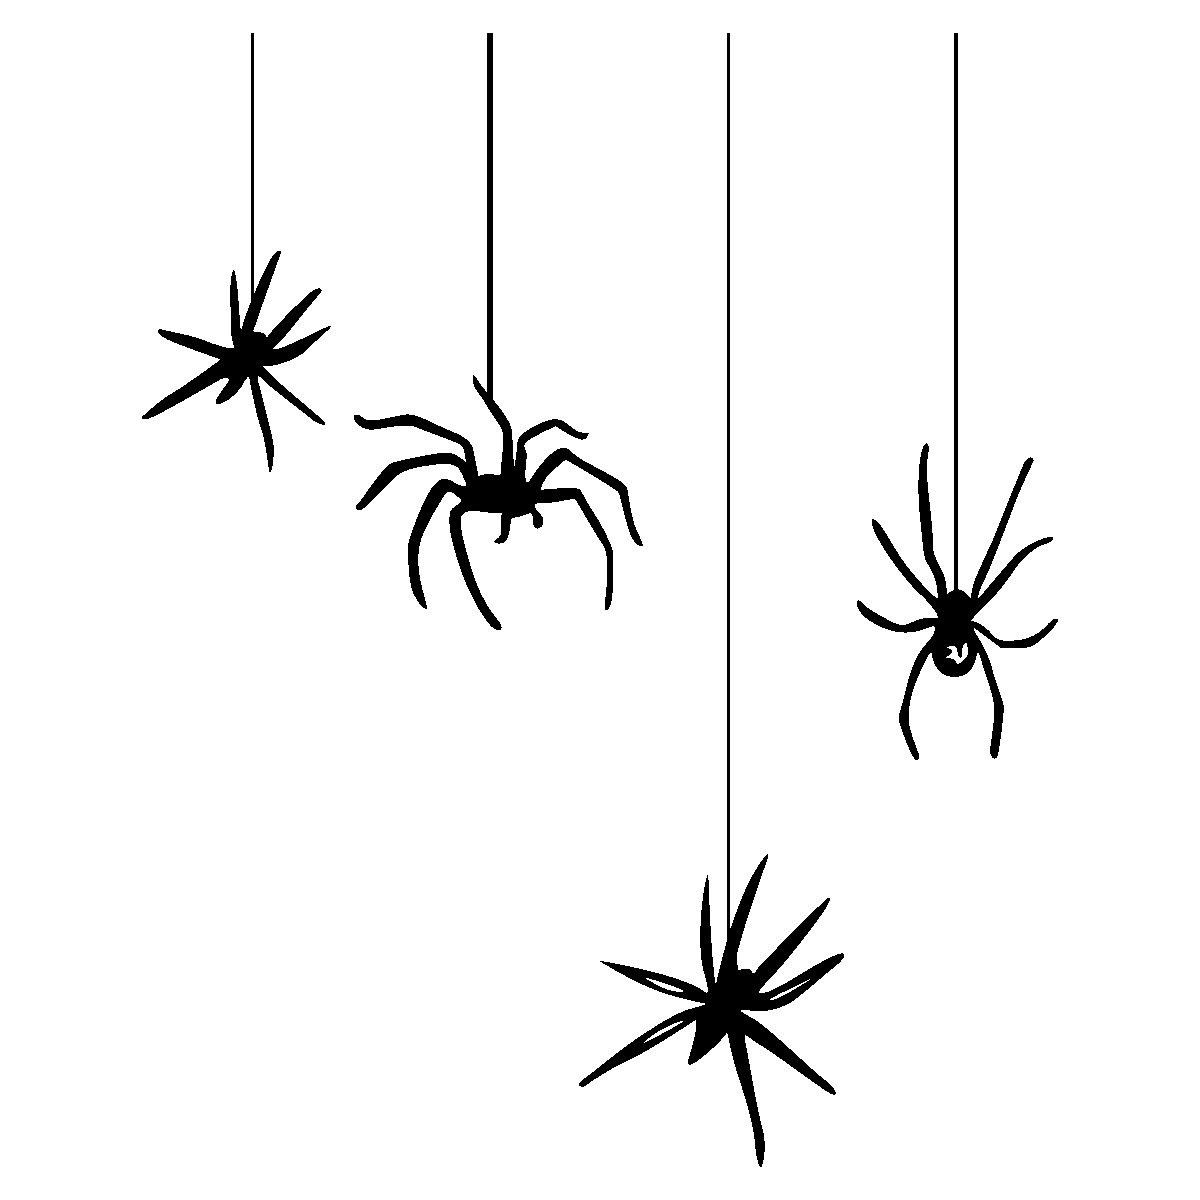 Hanging spider png. Collection of halloween